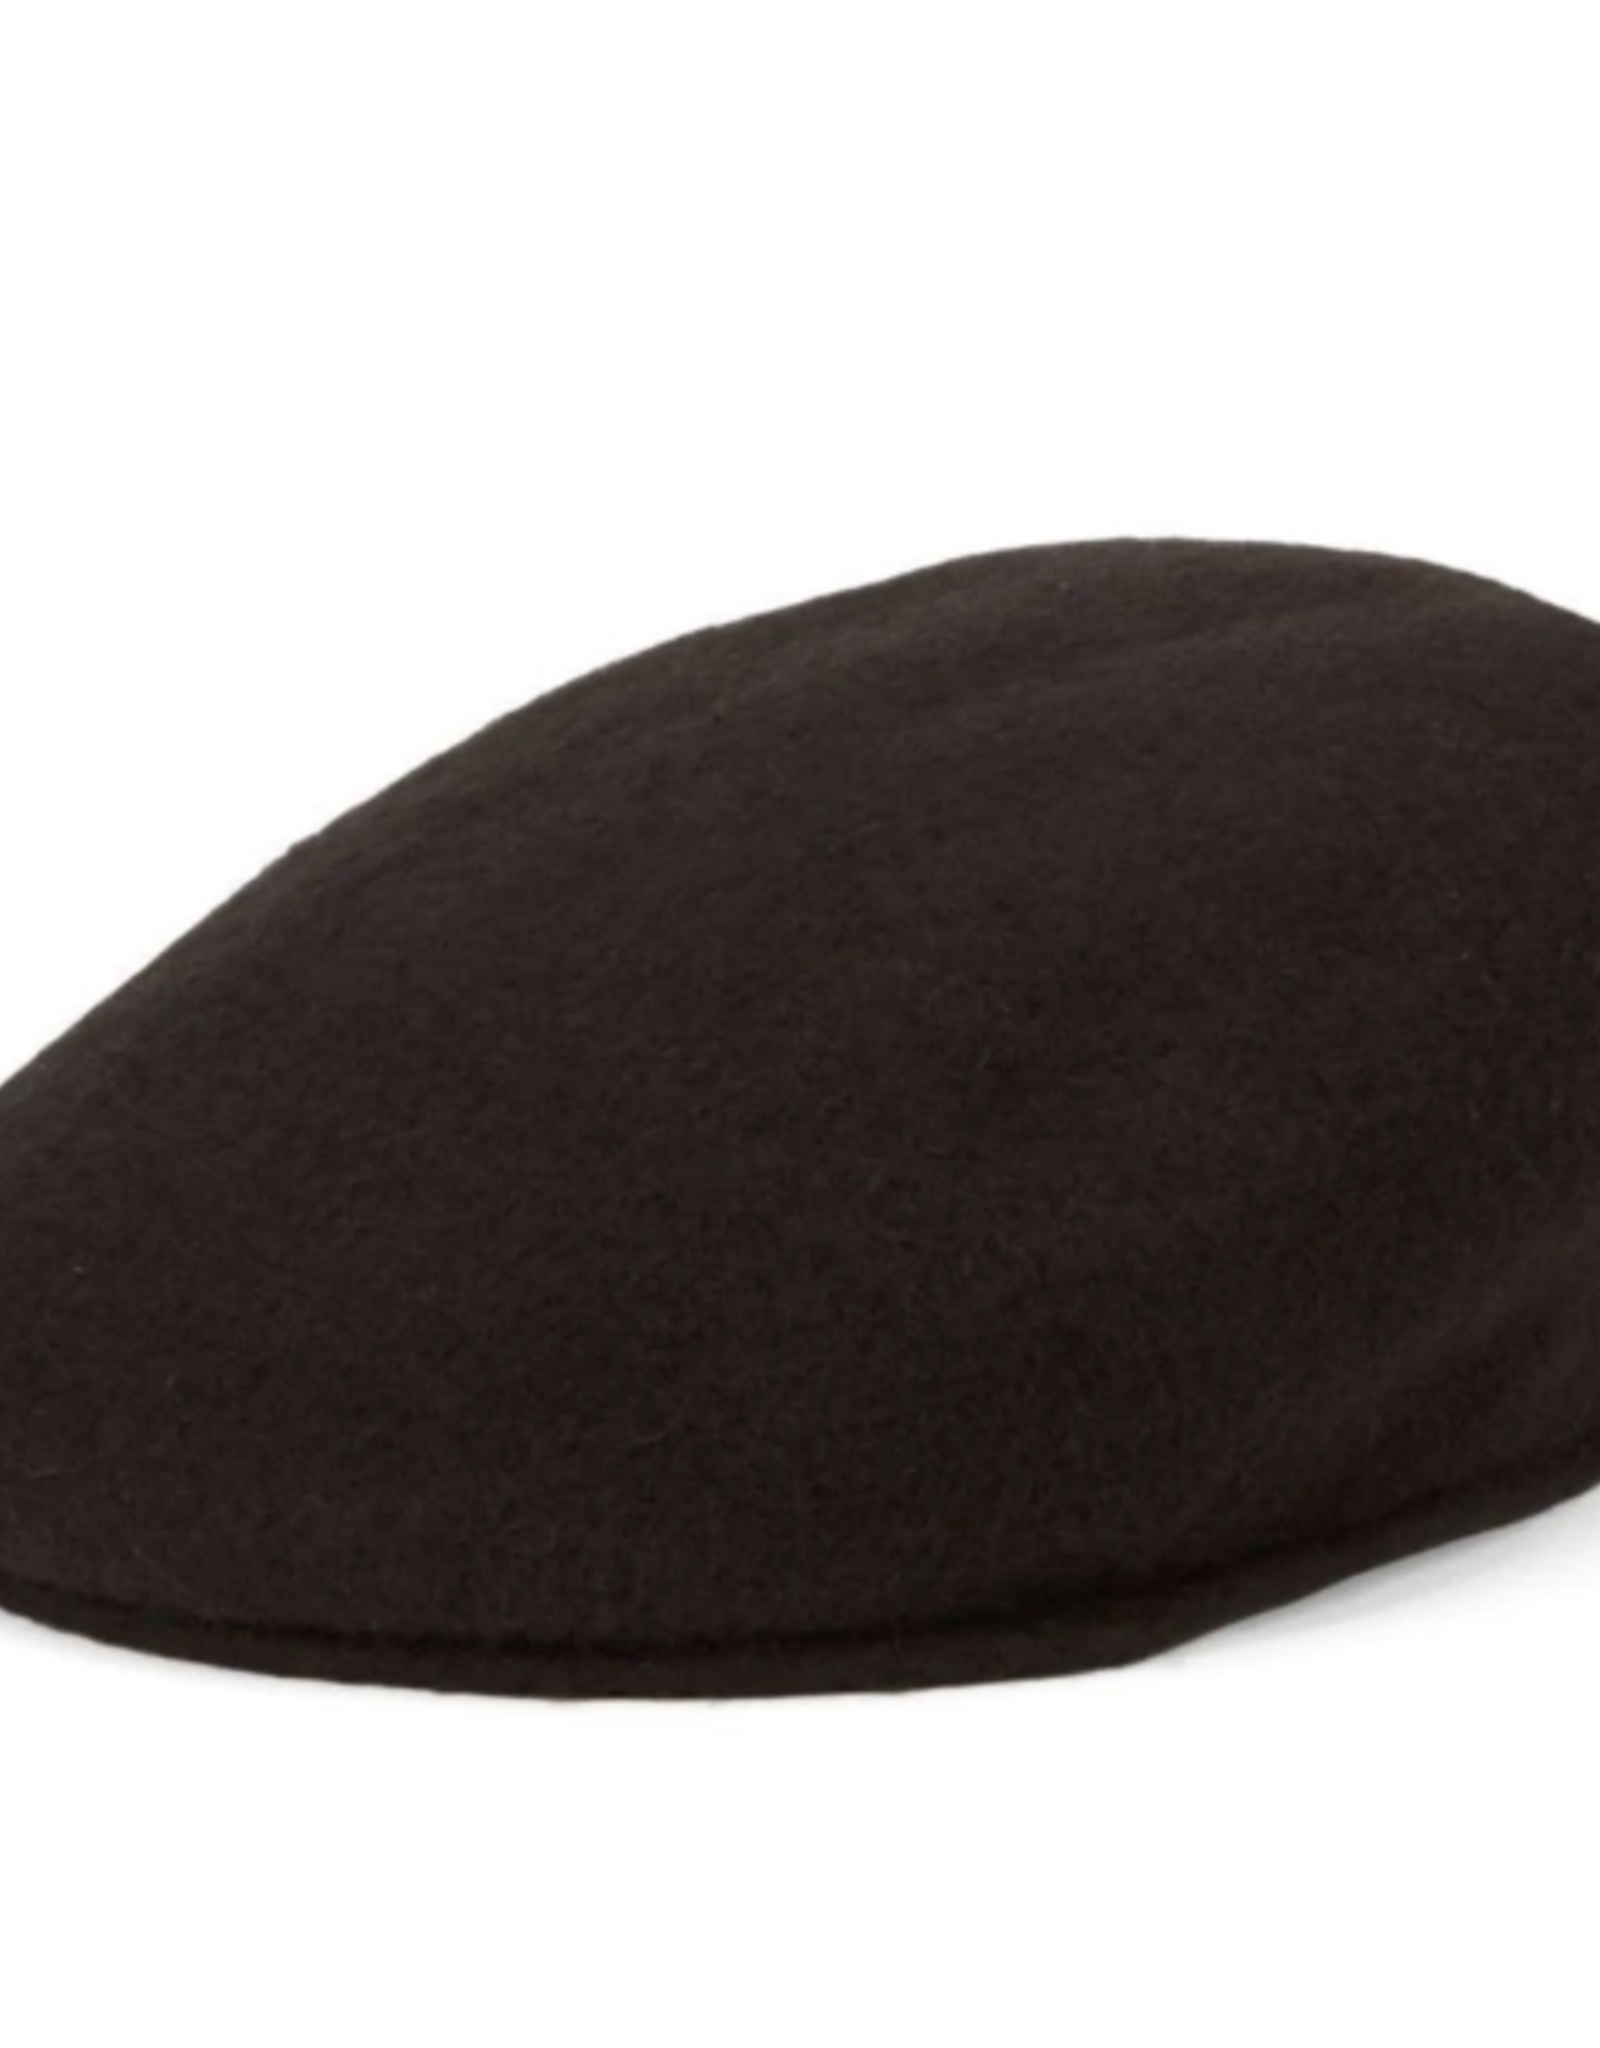 DRIVERS HAT BROWN BOILED WOOL WITH ELASTIC BAND